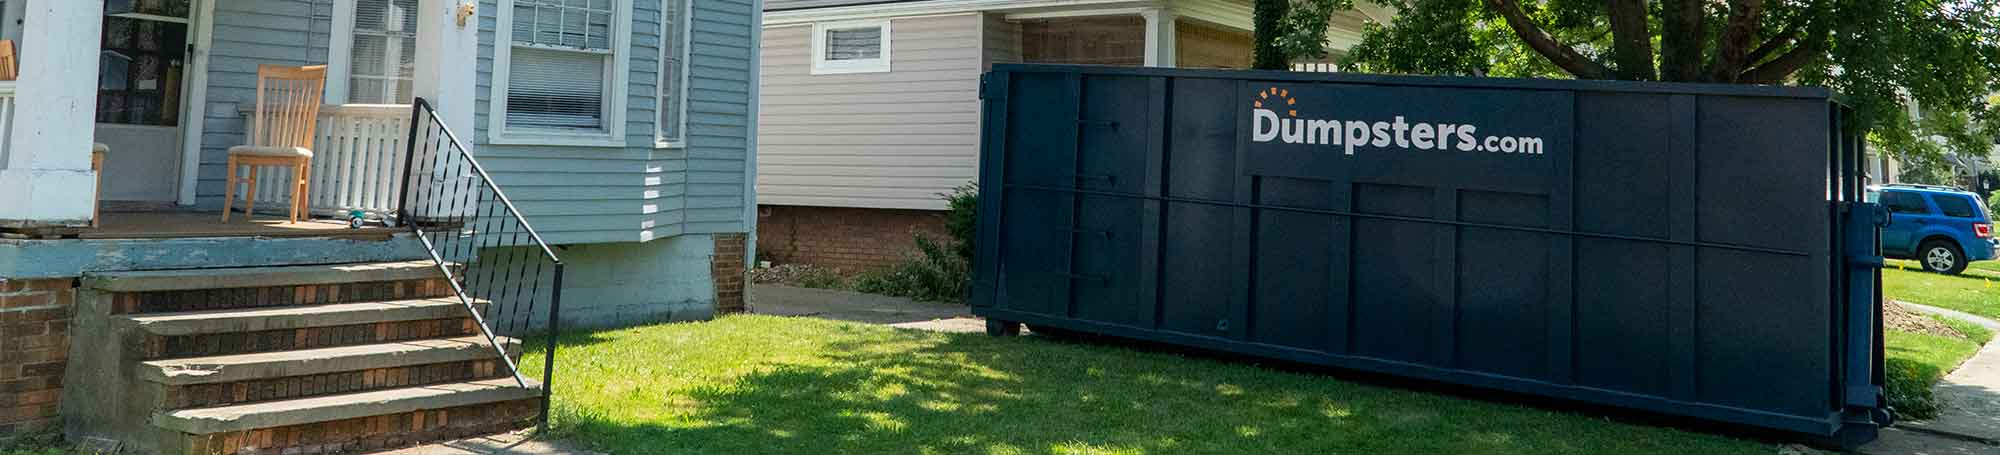 A Roll Off Dumpster in a Driveway Next to a Blue House.